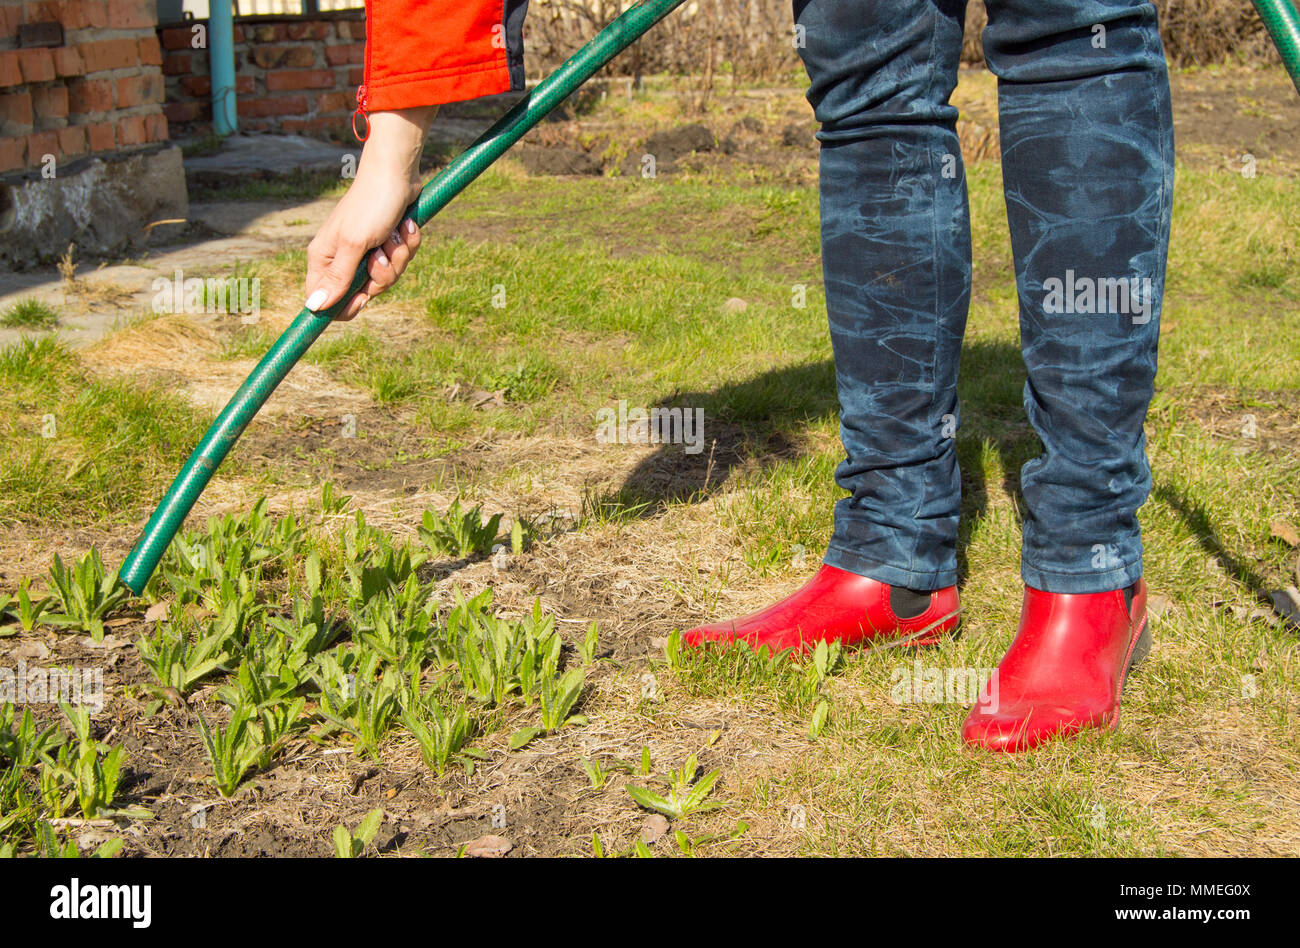 Beautiful women's hand with manicure holding a hose for watering plants and flowers in the garden - Stock Image